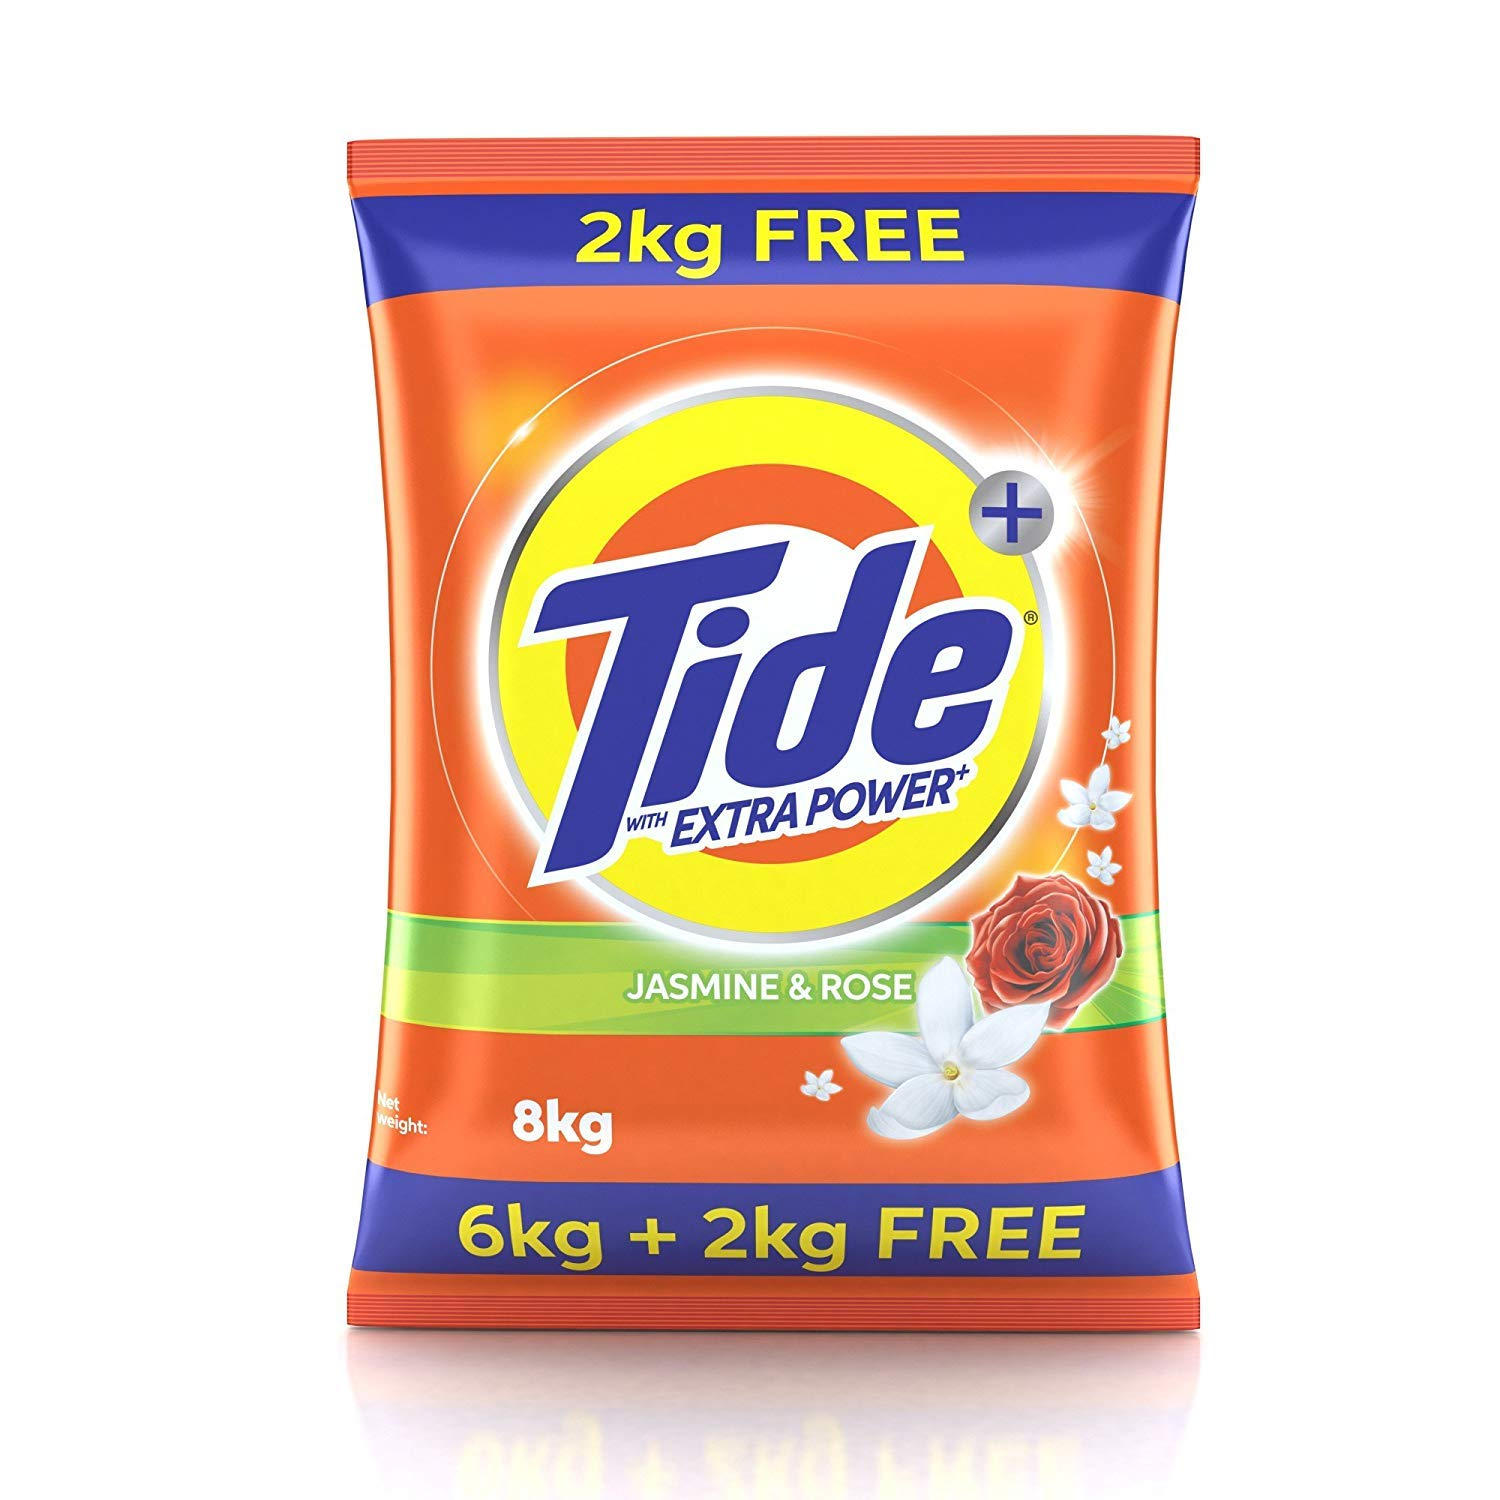 Tide Plus Detergent Washing Powder with Extra Power Jasmine and Rose Pack – 6 kg with Free 2 kg Pack